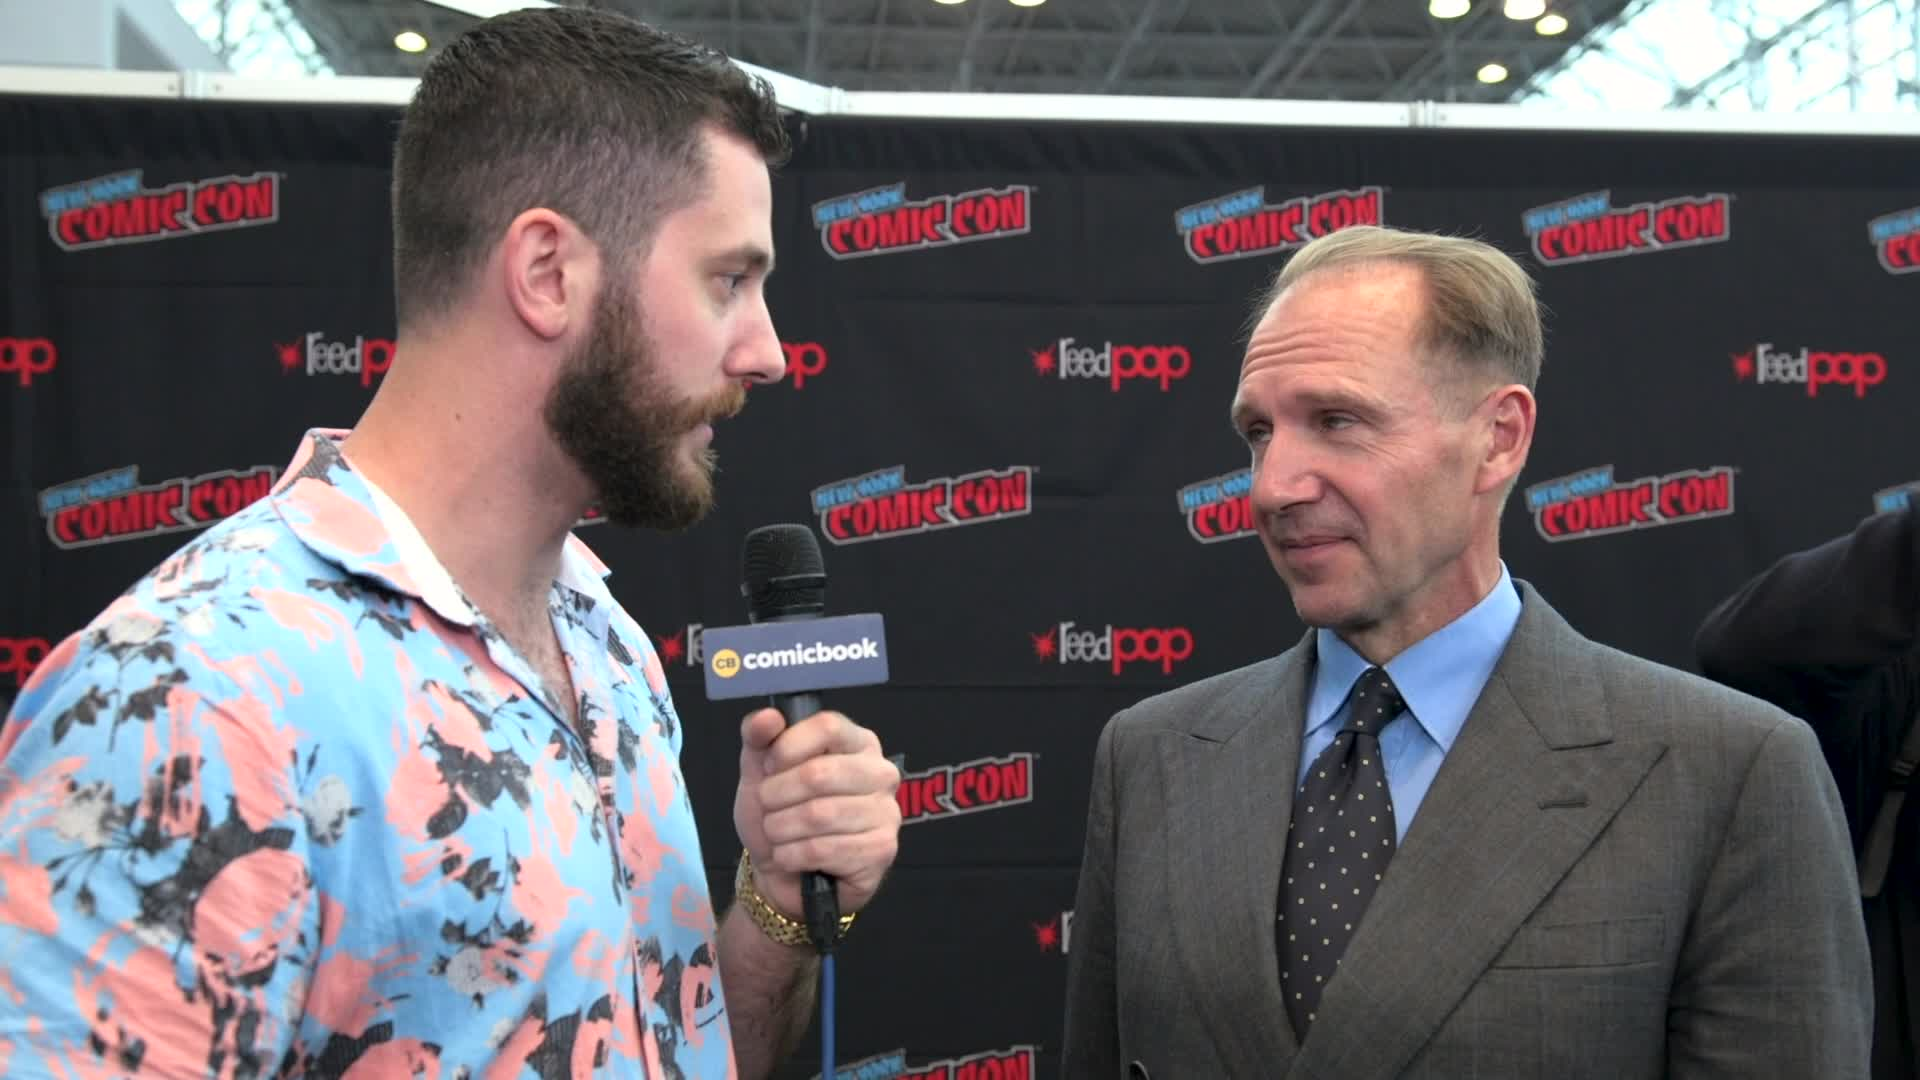 Ralph Fiennes - NYCC 2019 Exclusive Interview screen capture